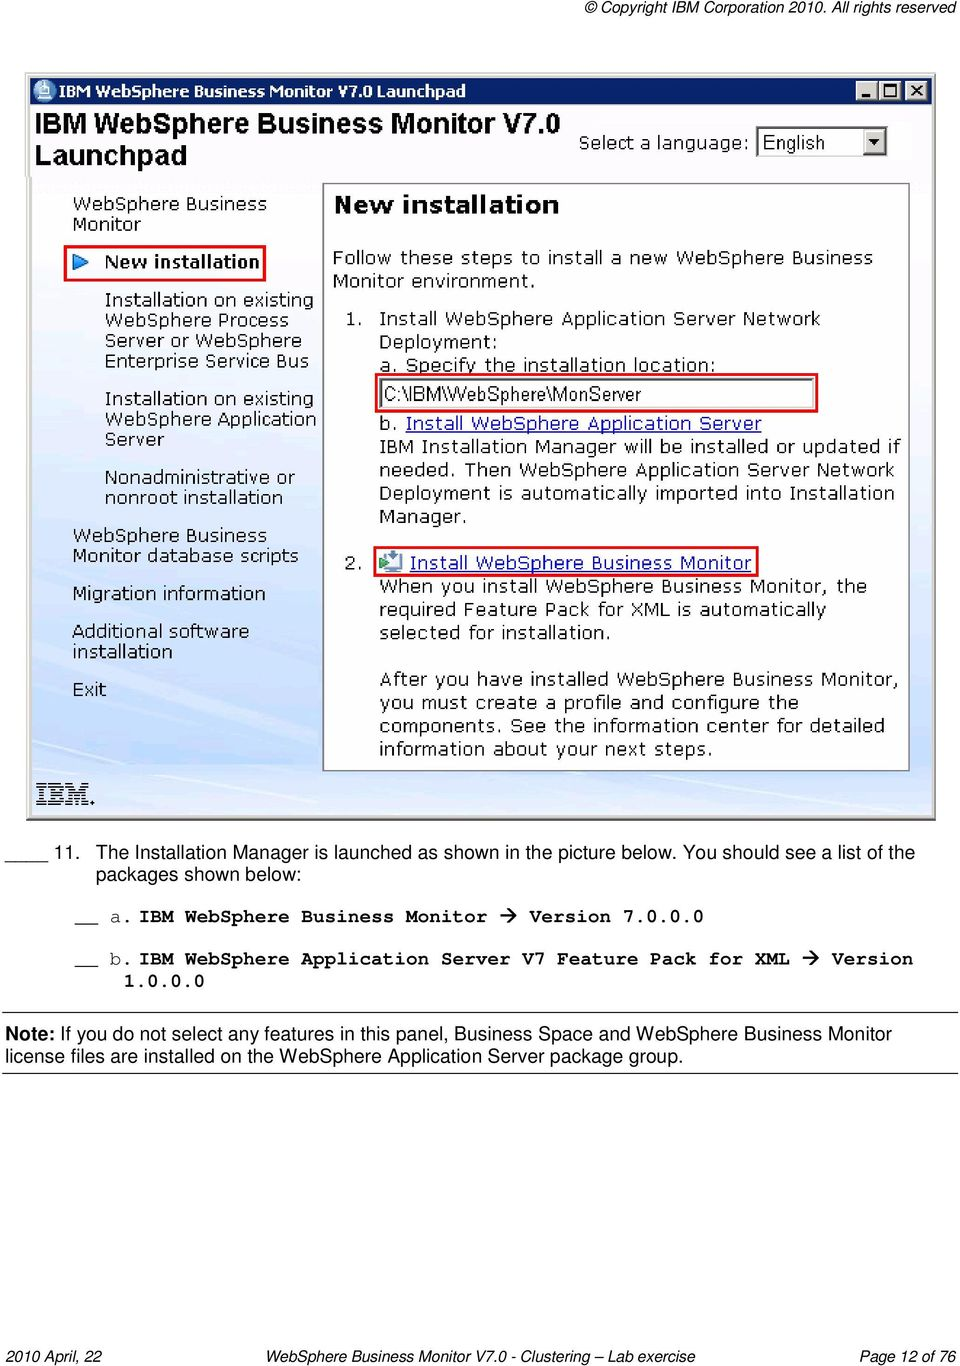 0.0 b. IBM WebSphere Application Server V7 Feature Pack for XML Version 1.0.0.0 Note: If you do not select any features in this